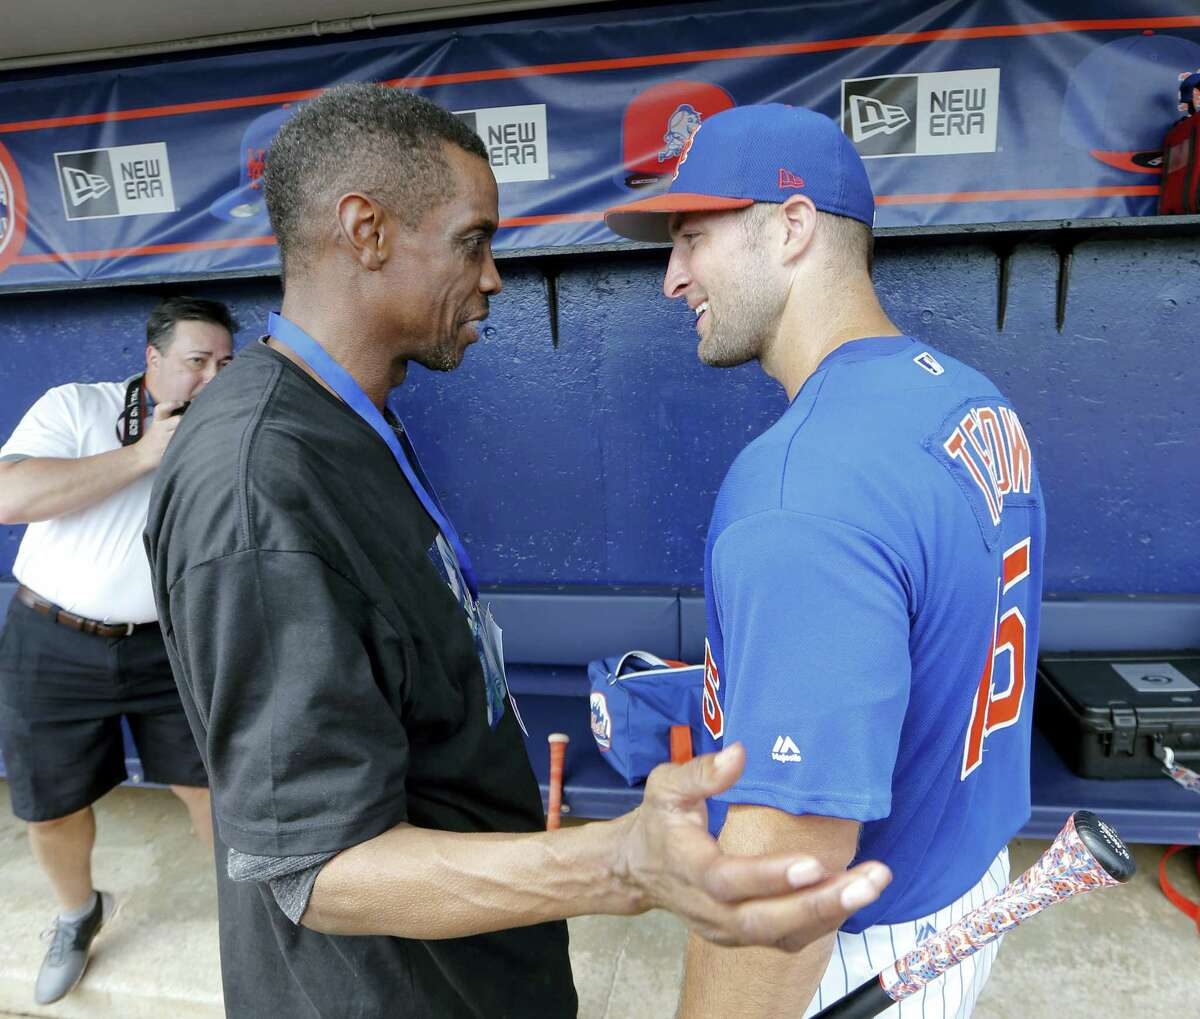 Tim Tebow, right, talks with former Mets pitcher Dwight Gooden before a spring training game Monday in Port St. Lucie, Fla.